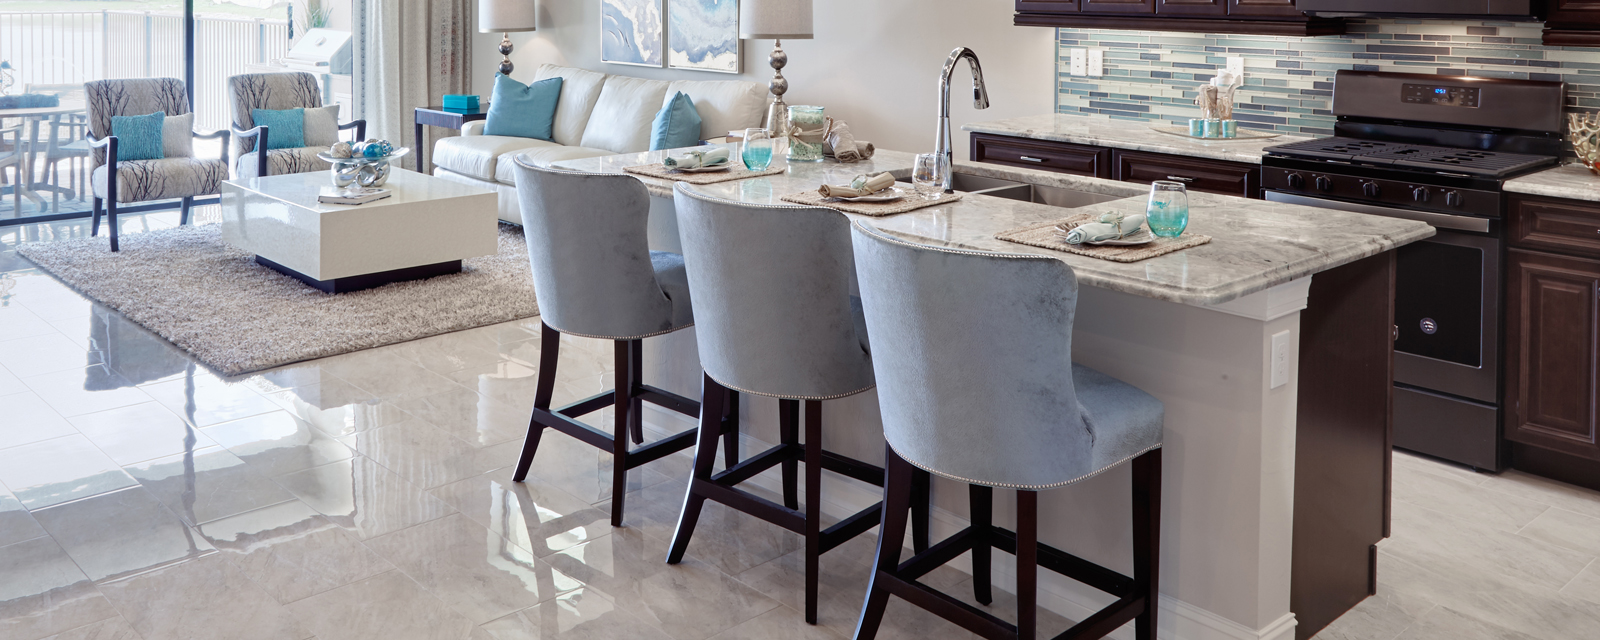 Kitchen Counter And Stools Bar Counter Stools Furniture Store Shop Furniture Shop